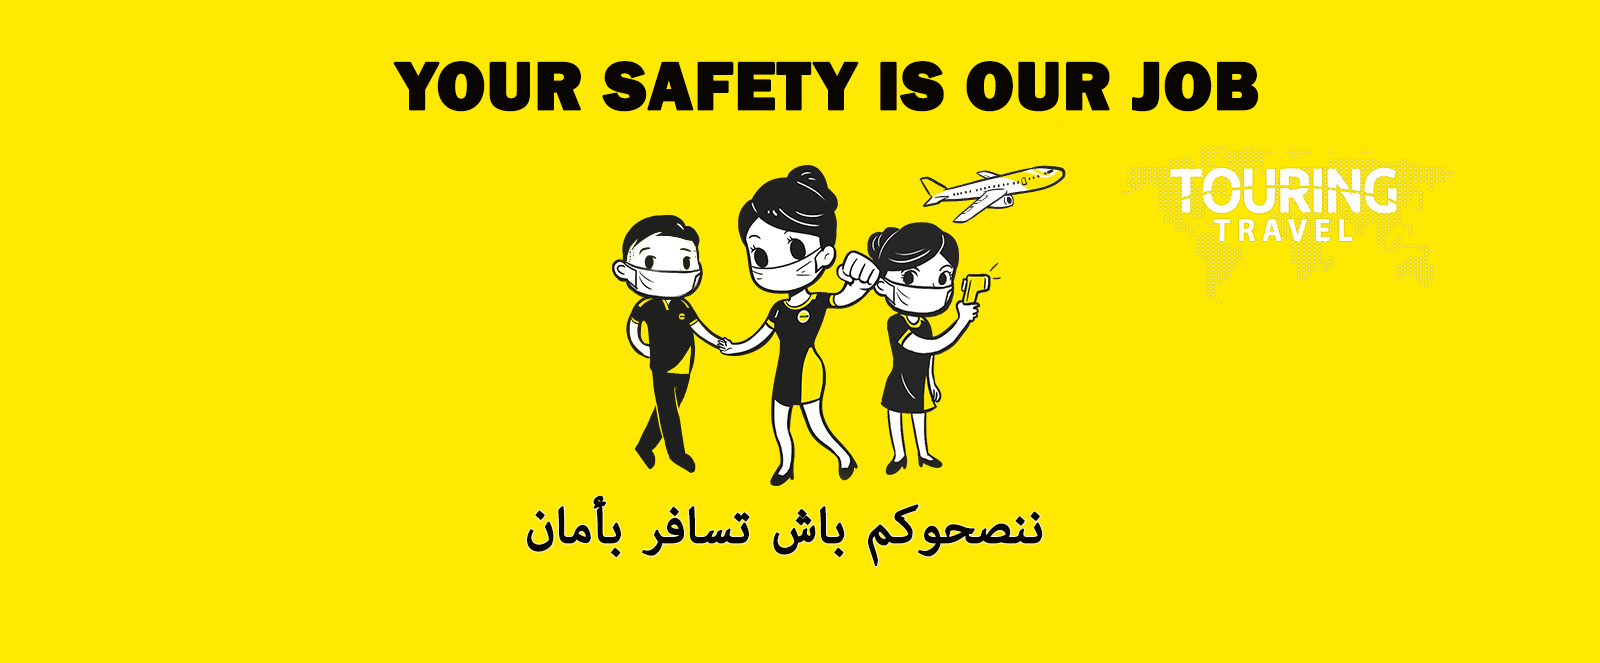 YOUR SAFETY IS OUR JOB